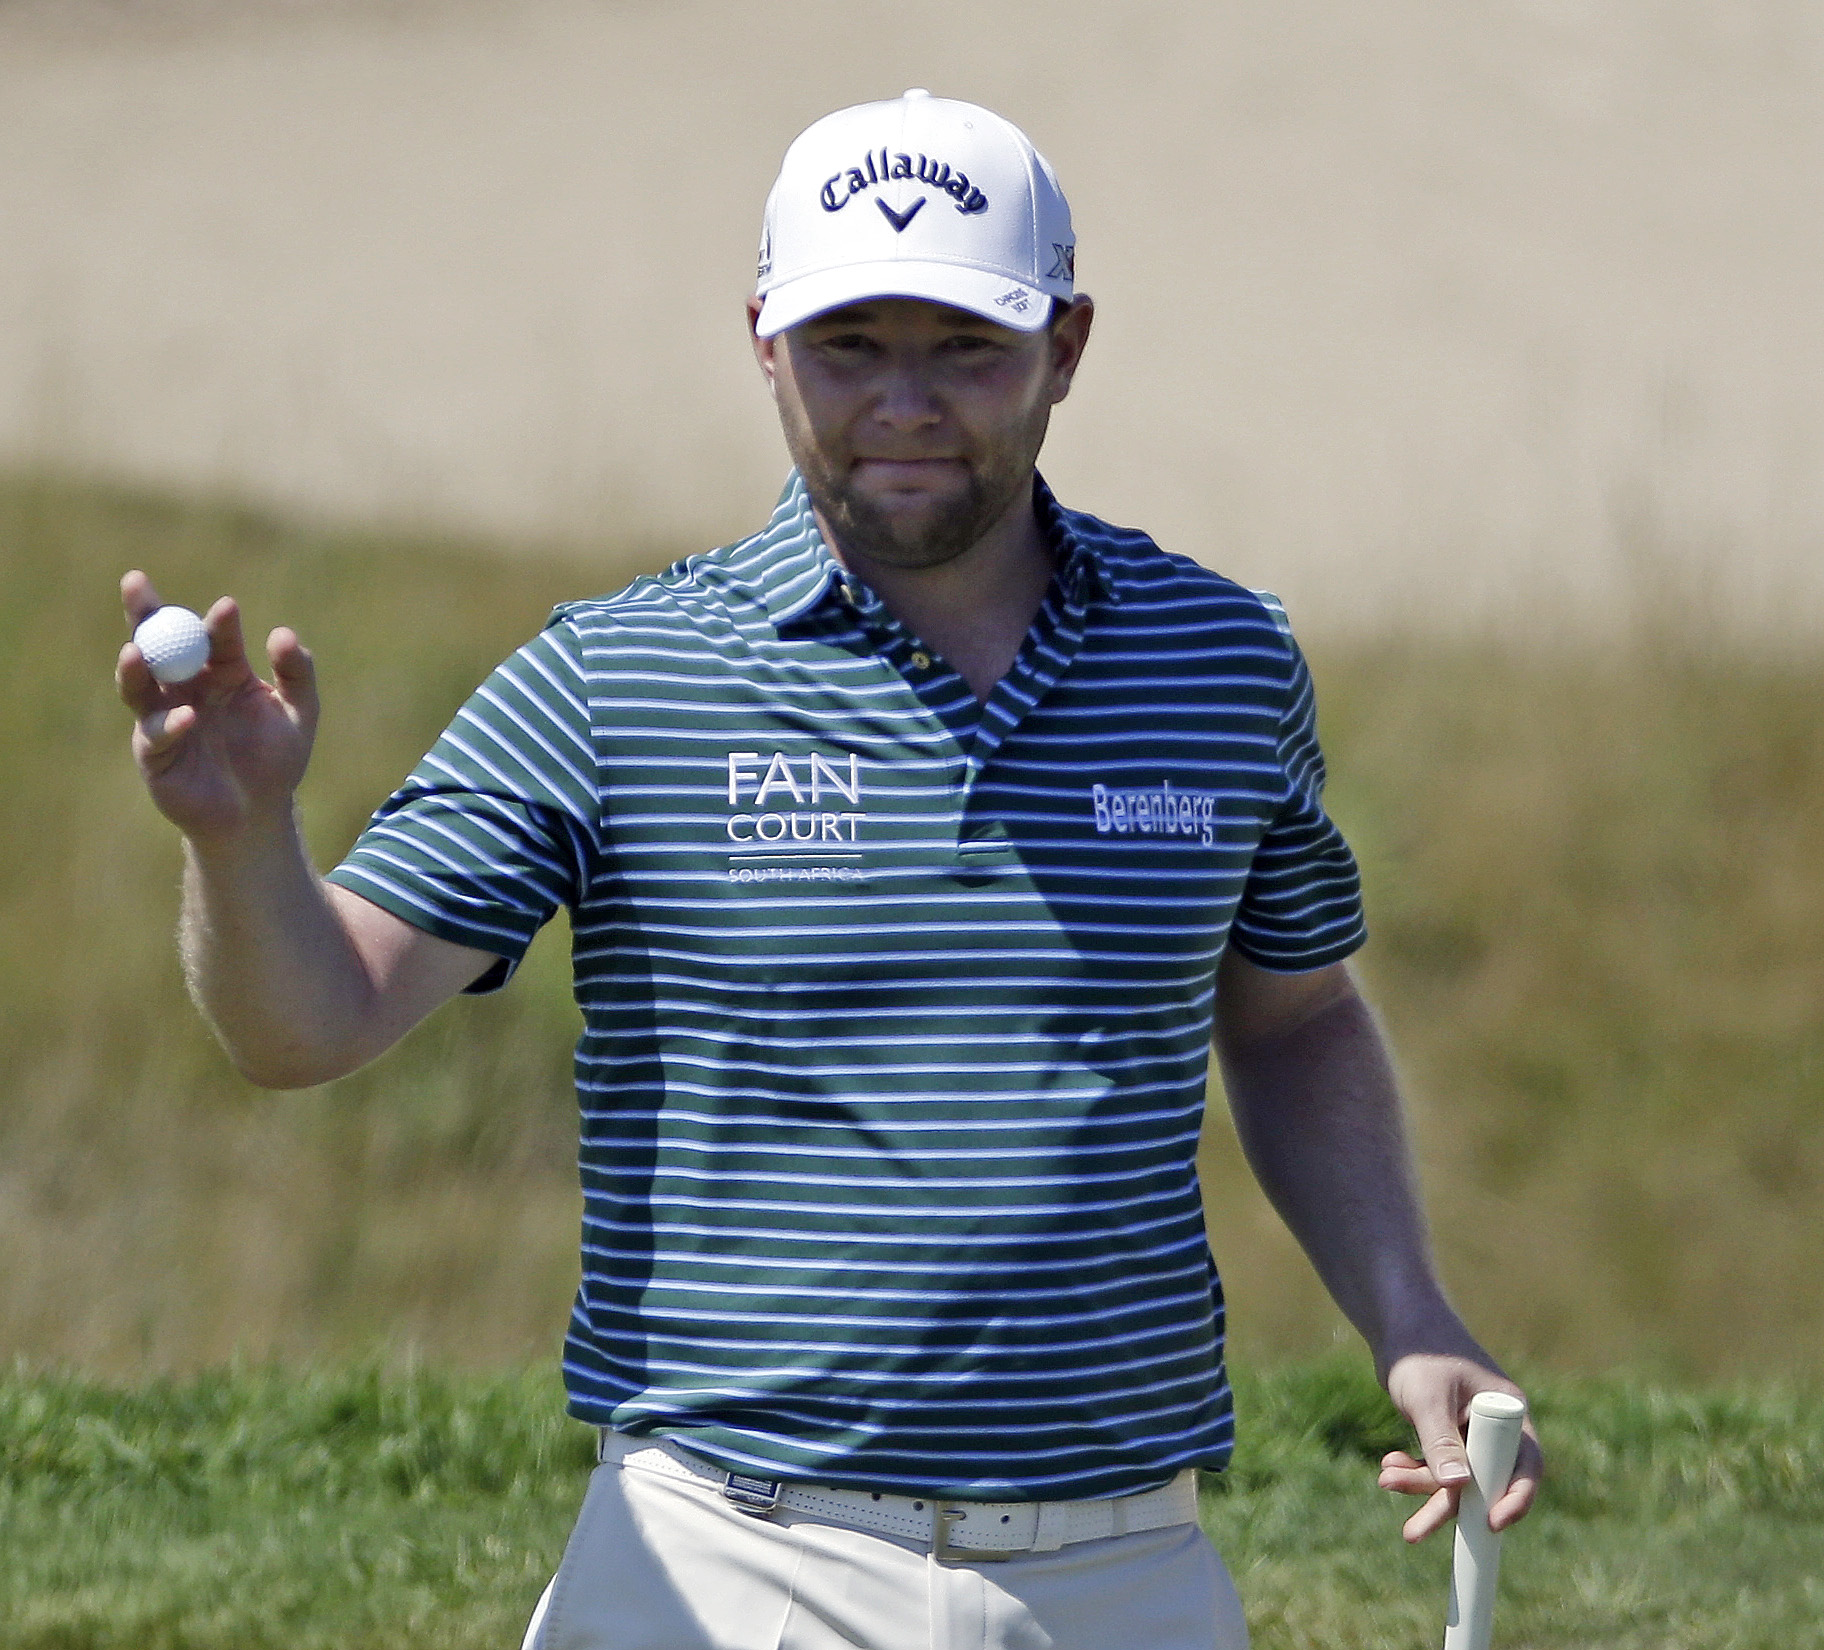 Branden Grace, of South Africa, reacts after making a birdie on the first hole during the third round of the PGA Championship golf tournament Saturday, Aug. 15, 2015, at Whistling Straits in Haven, Wis. (AP Photo/Brynn Anderson)